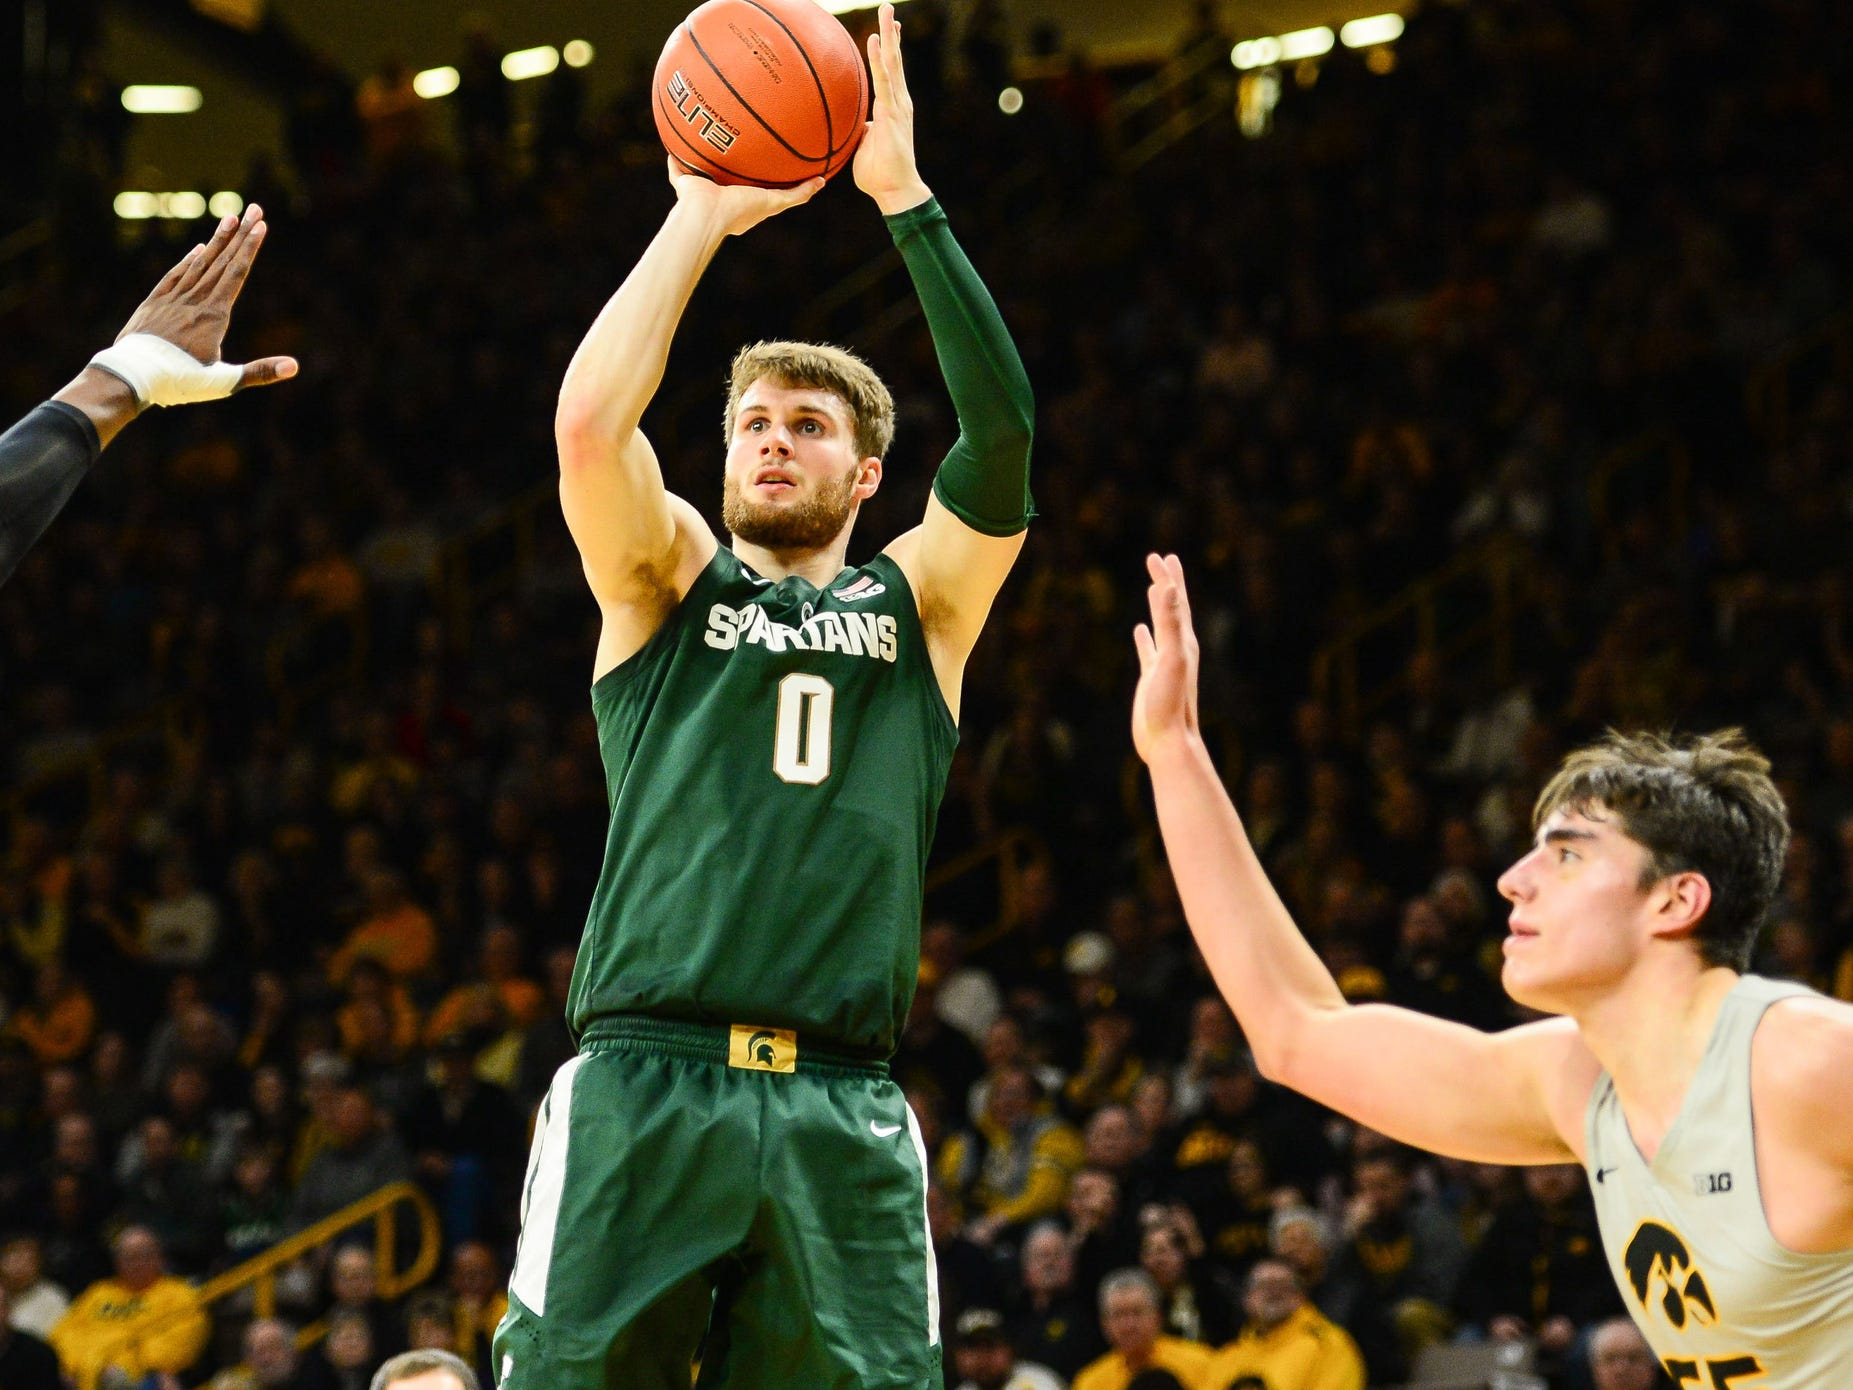 Michigan State's Kyle Ahrens shoots against Iowa in the second half in Iowa City, Iowa on Thursday, Jan. 24, 2019.